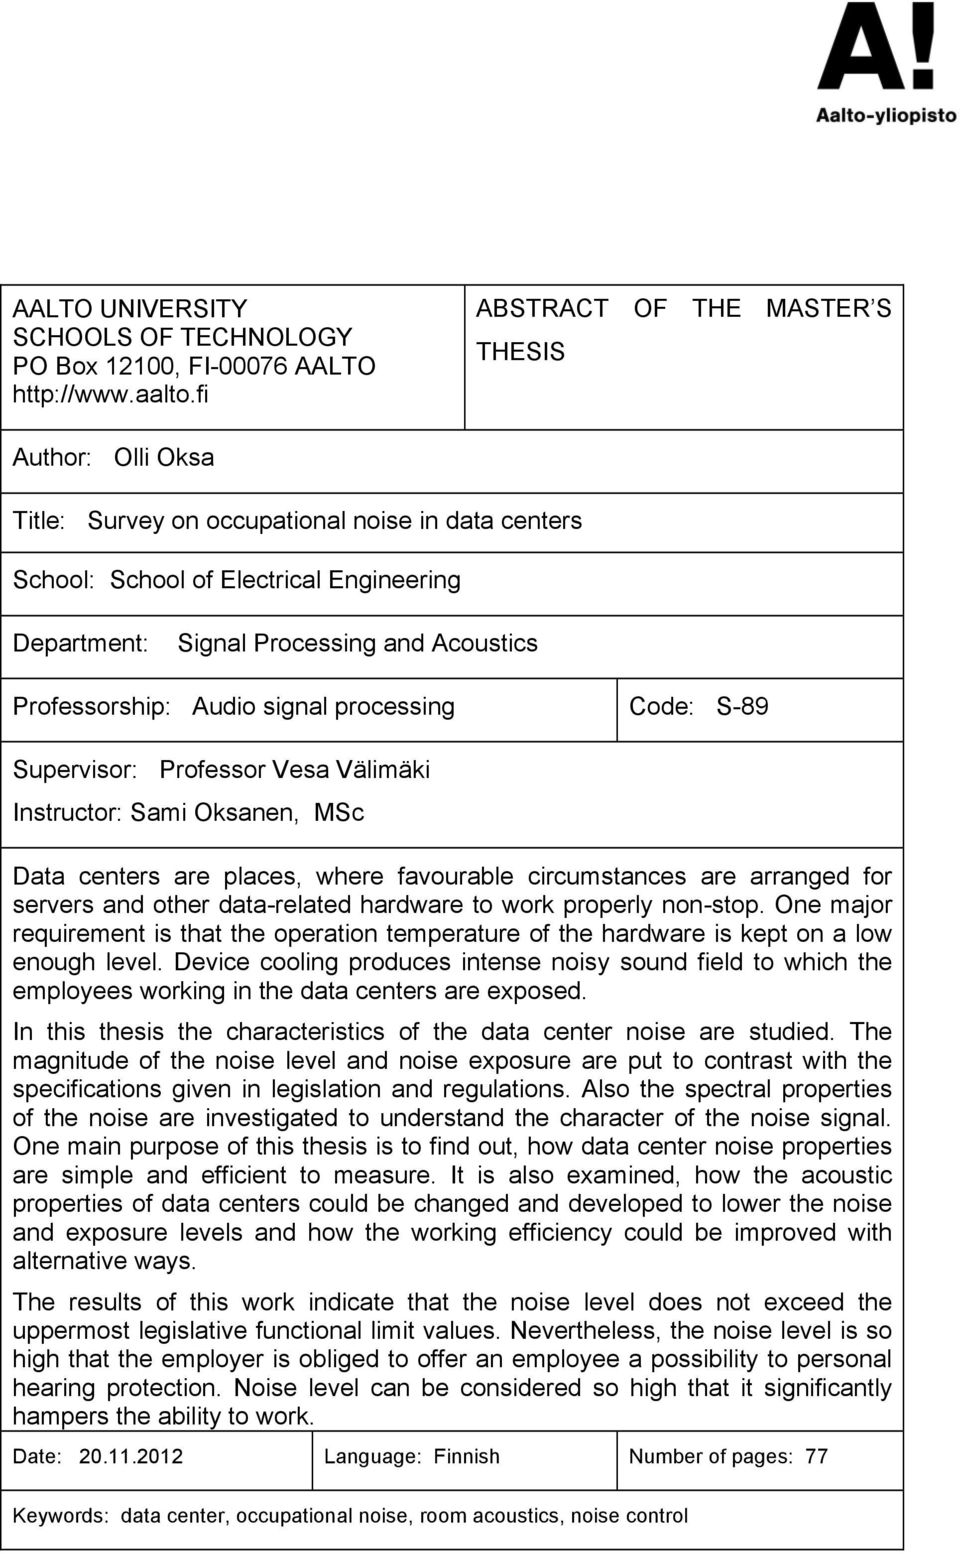 Professorship: Audio signal processing Code: S-89 Supervisor: Professor Vesa Välimäki Instructor: Sami Oksanen, MSc Data centers are places, where favourable circumstances are arranged for servers